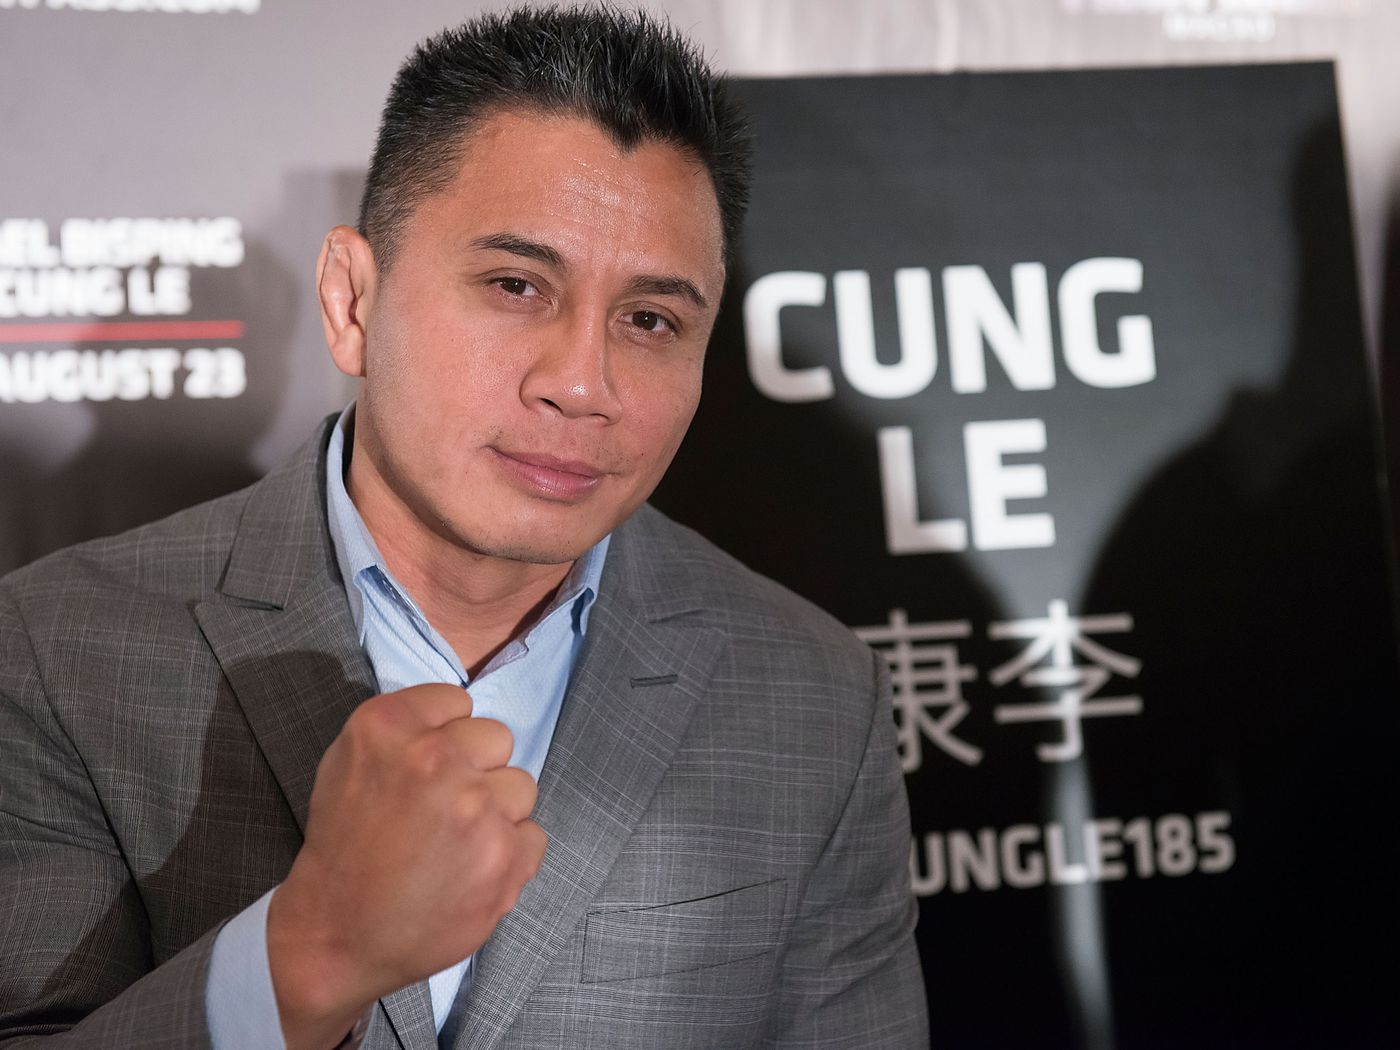 Cung Le For Fighters Mma Is Not A Great Sport Not A Good